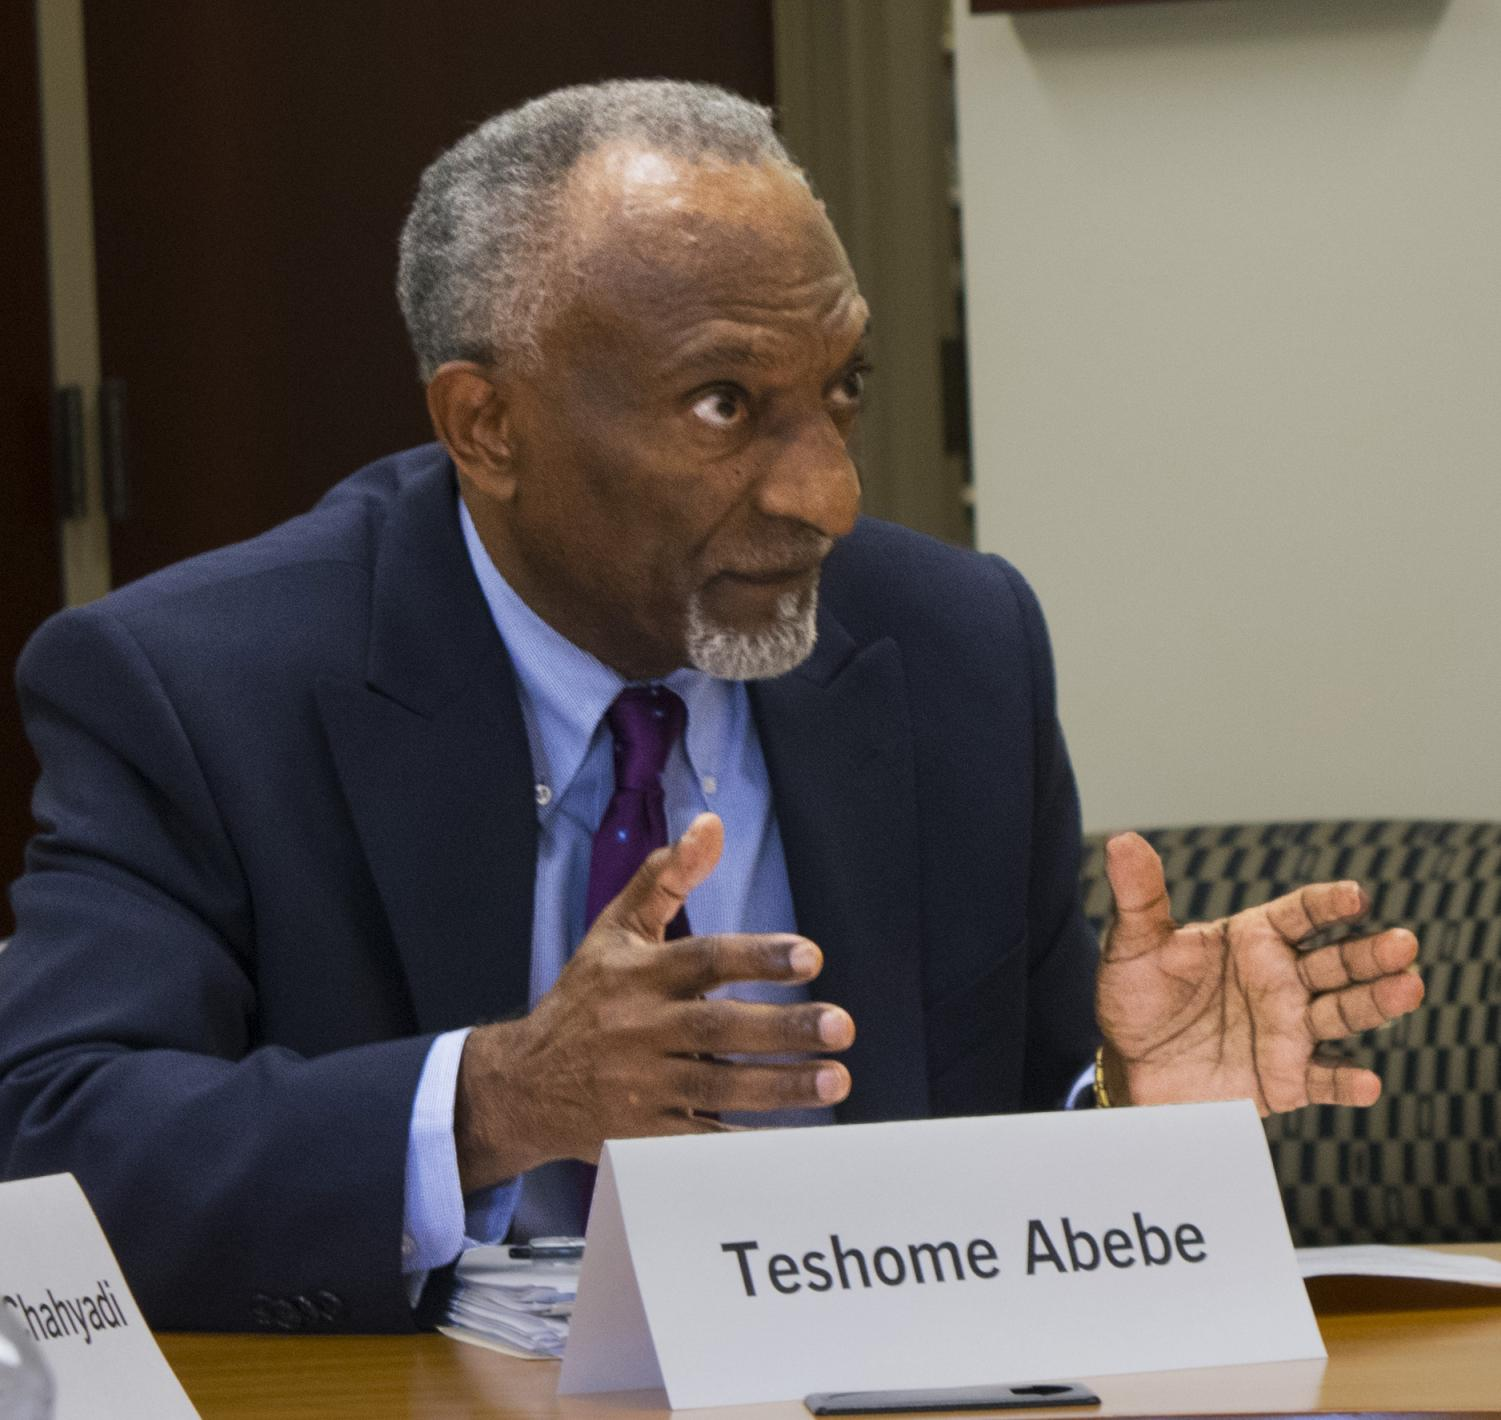 Teshome Abebe, a member of the Faculty Senate and economics professor, at the Faculty Senate meeting Tuesday in Booth Library. The senate discussed shared governance and possible ways to boost communications between organizations on campus.